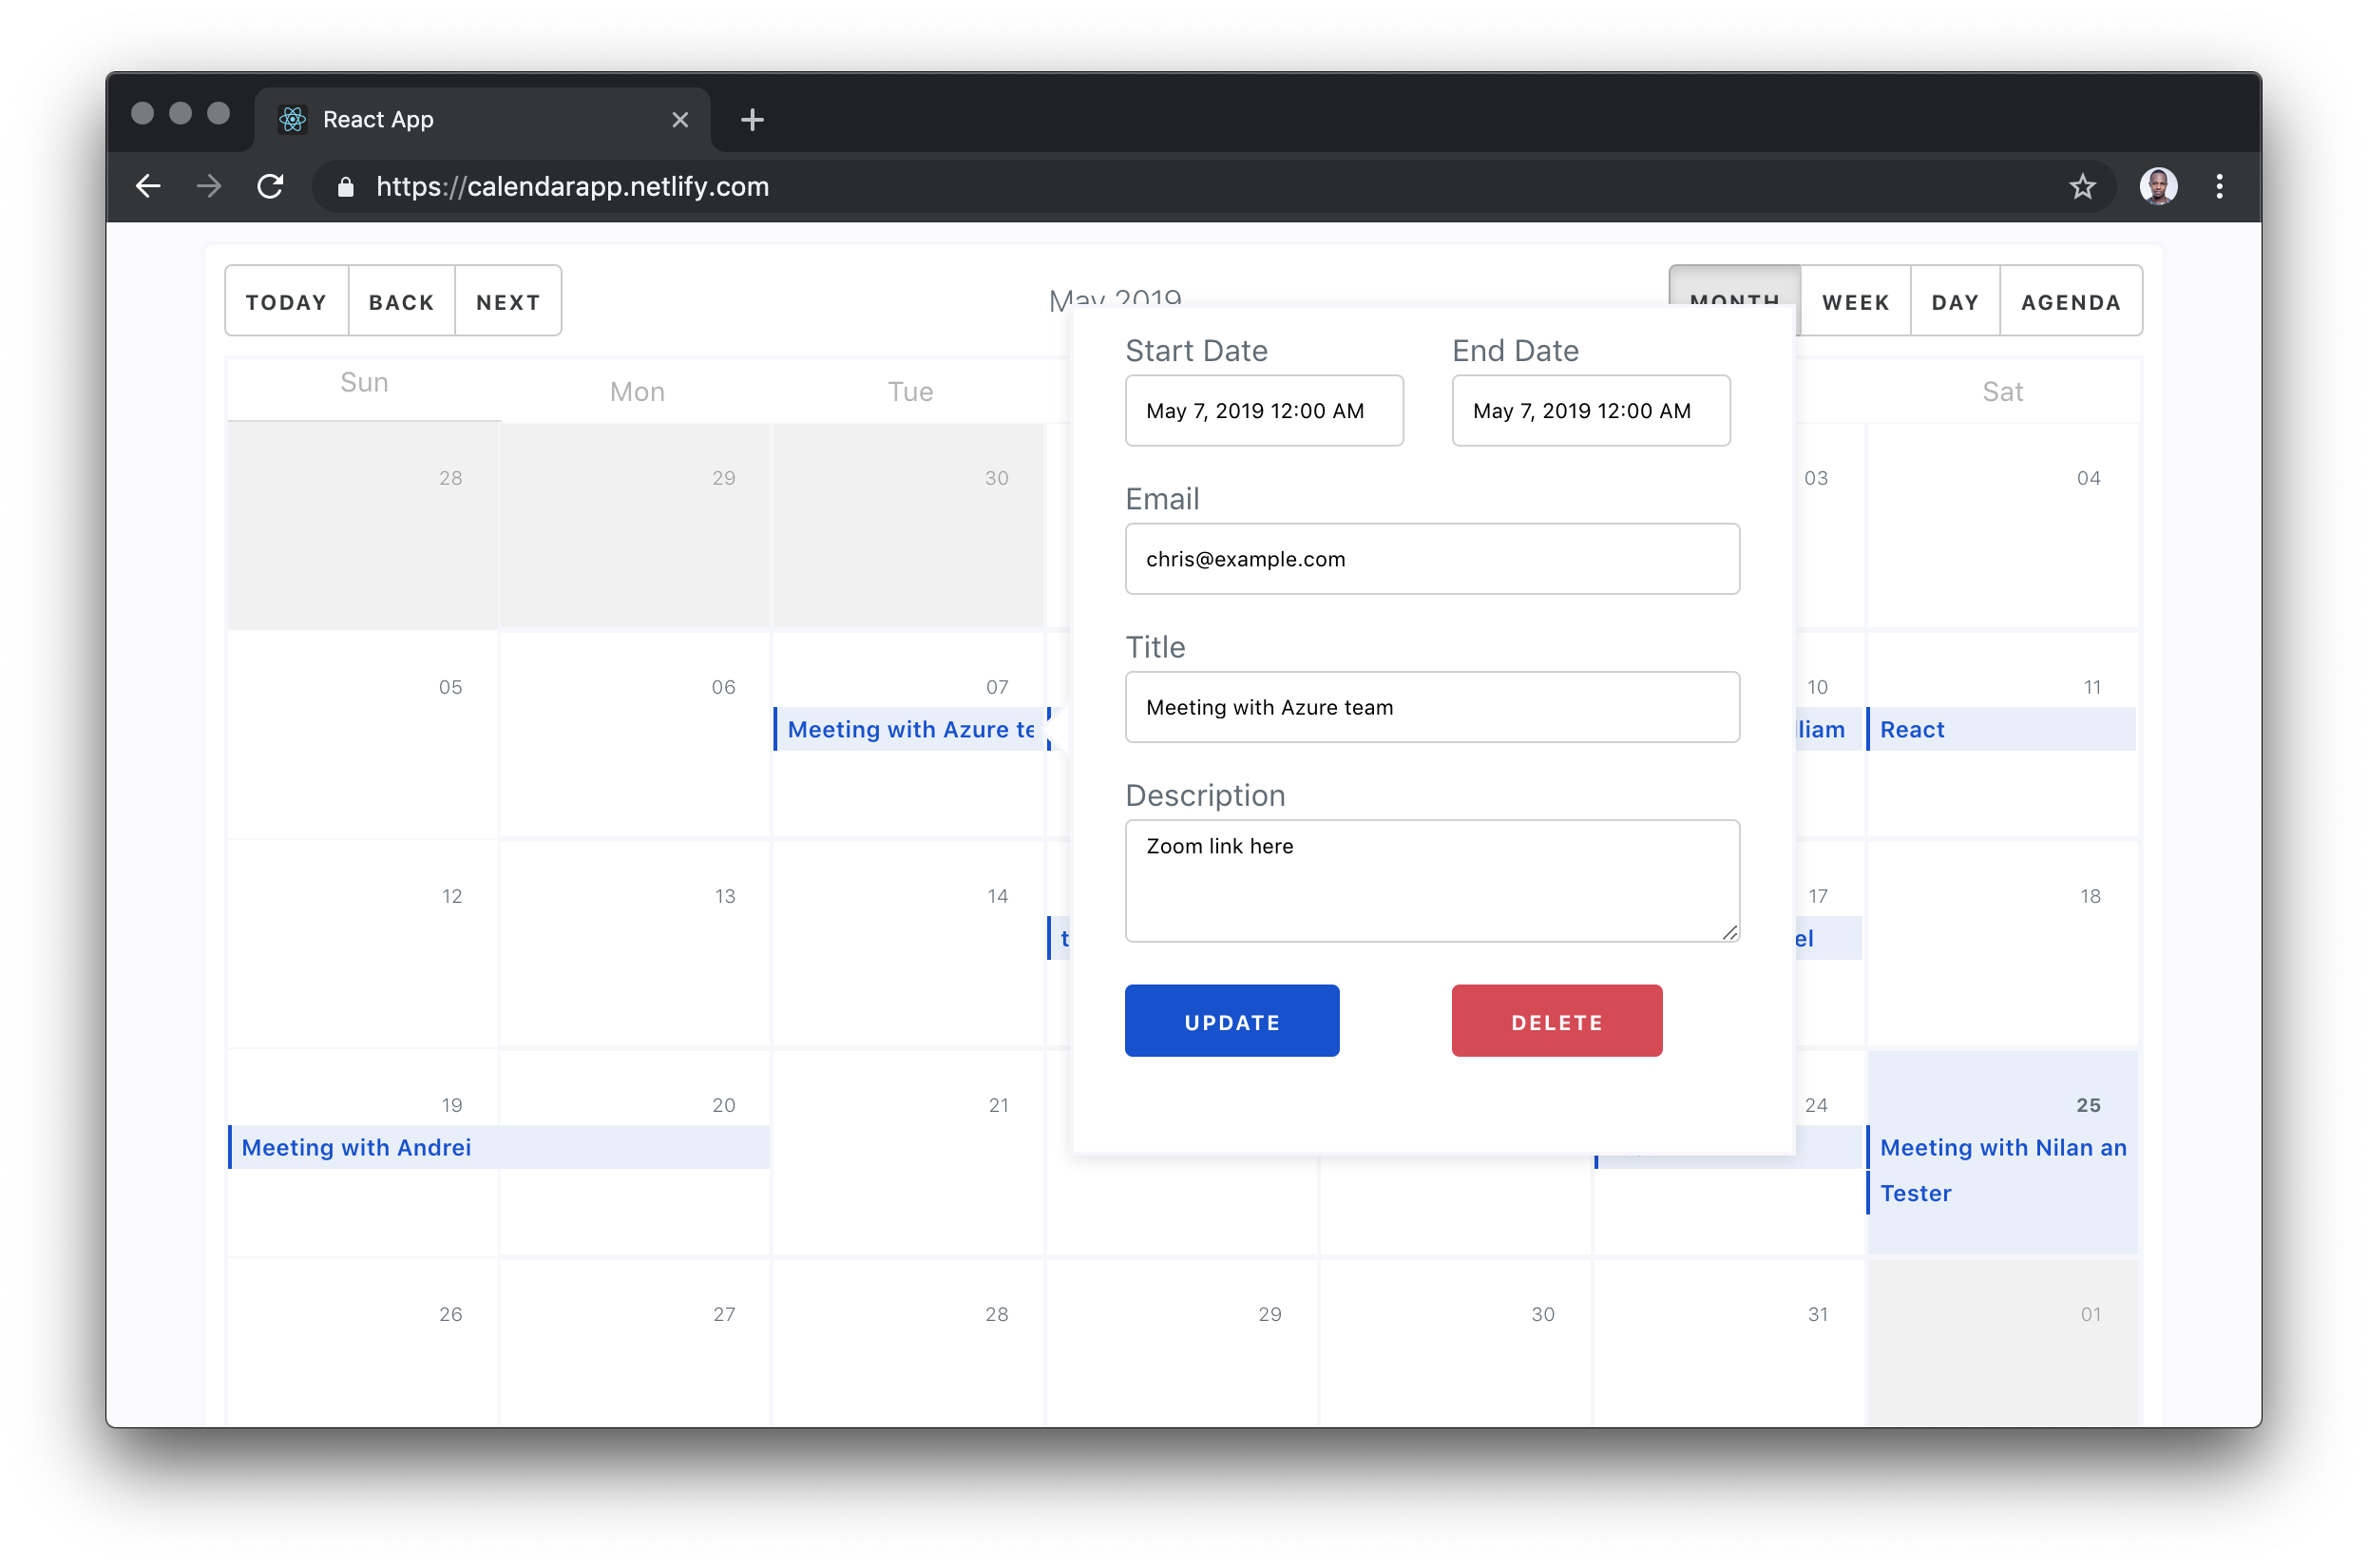 A calendar month view with a pop-up form for creating a new event as an overlay.